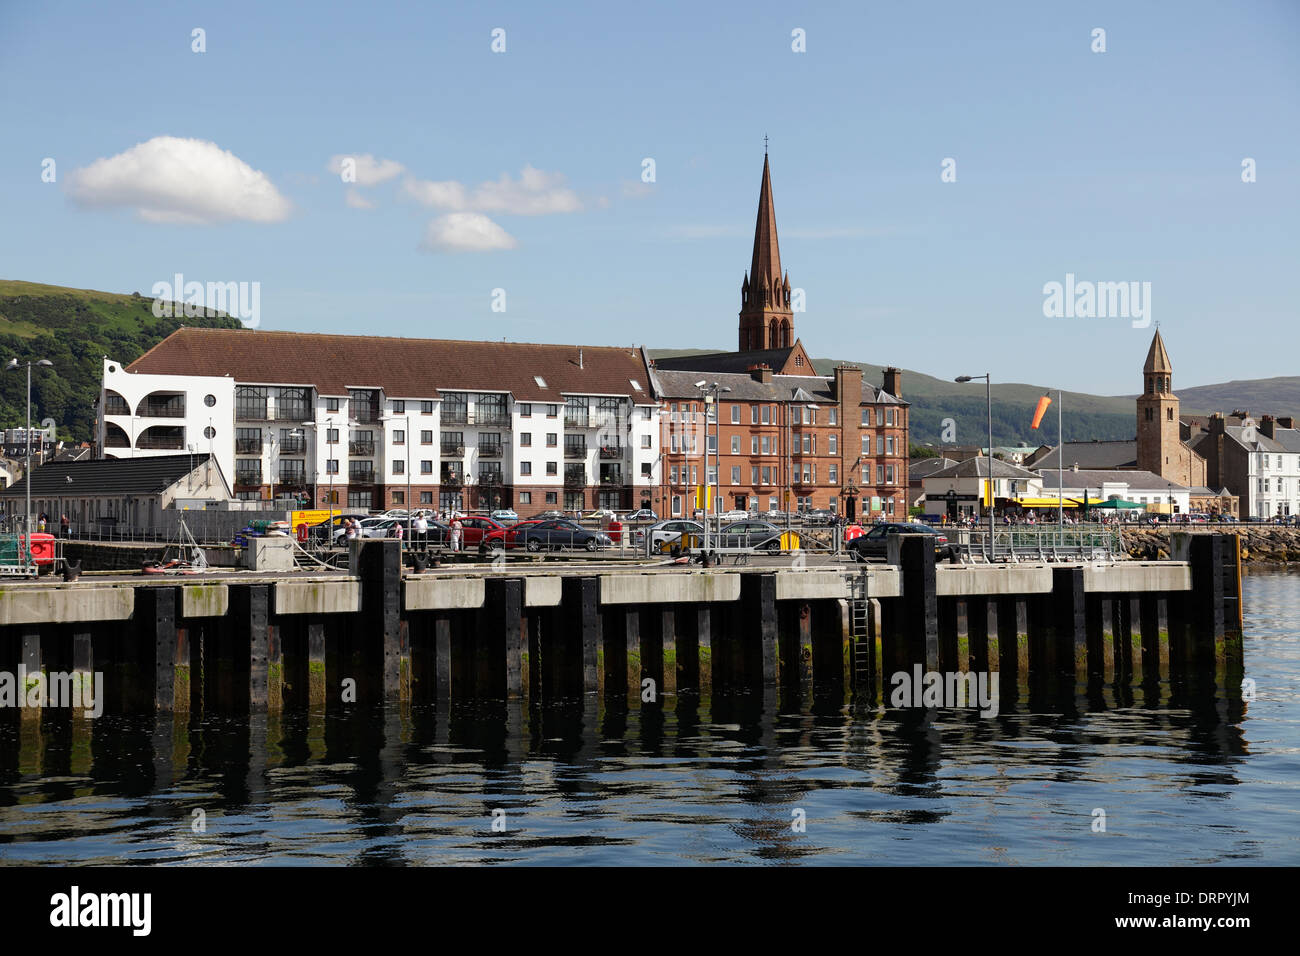 View of Largs from the Calmac Ferry arriving from Cumbrae on the Firth of Clyde, North Ayrshire, scotland, UK - Stock Image